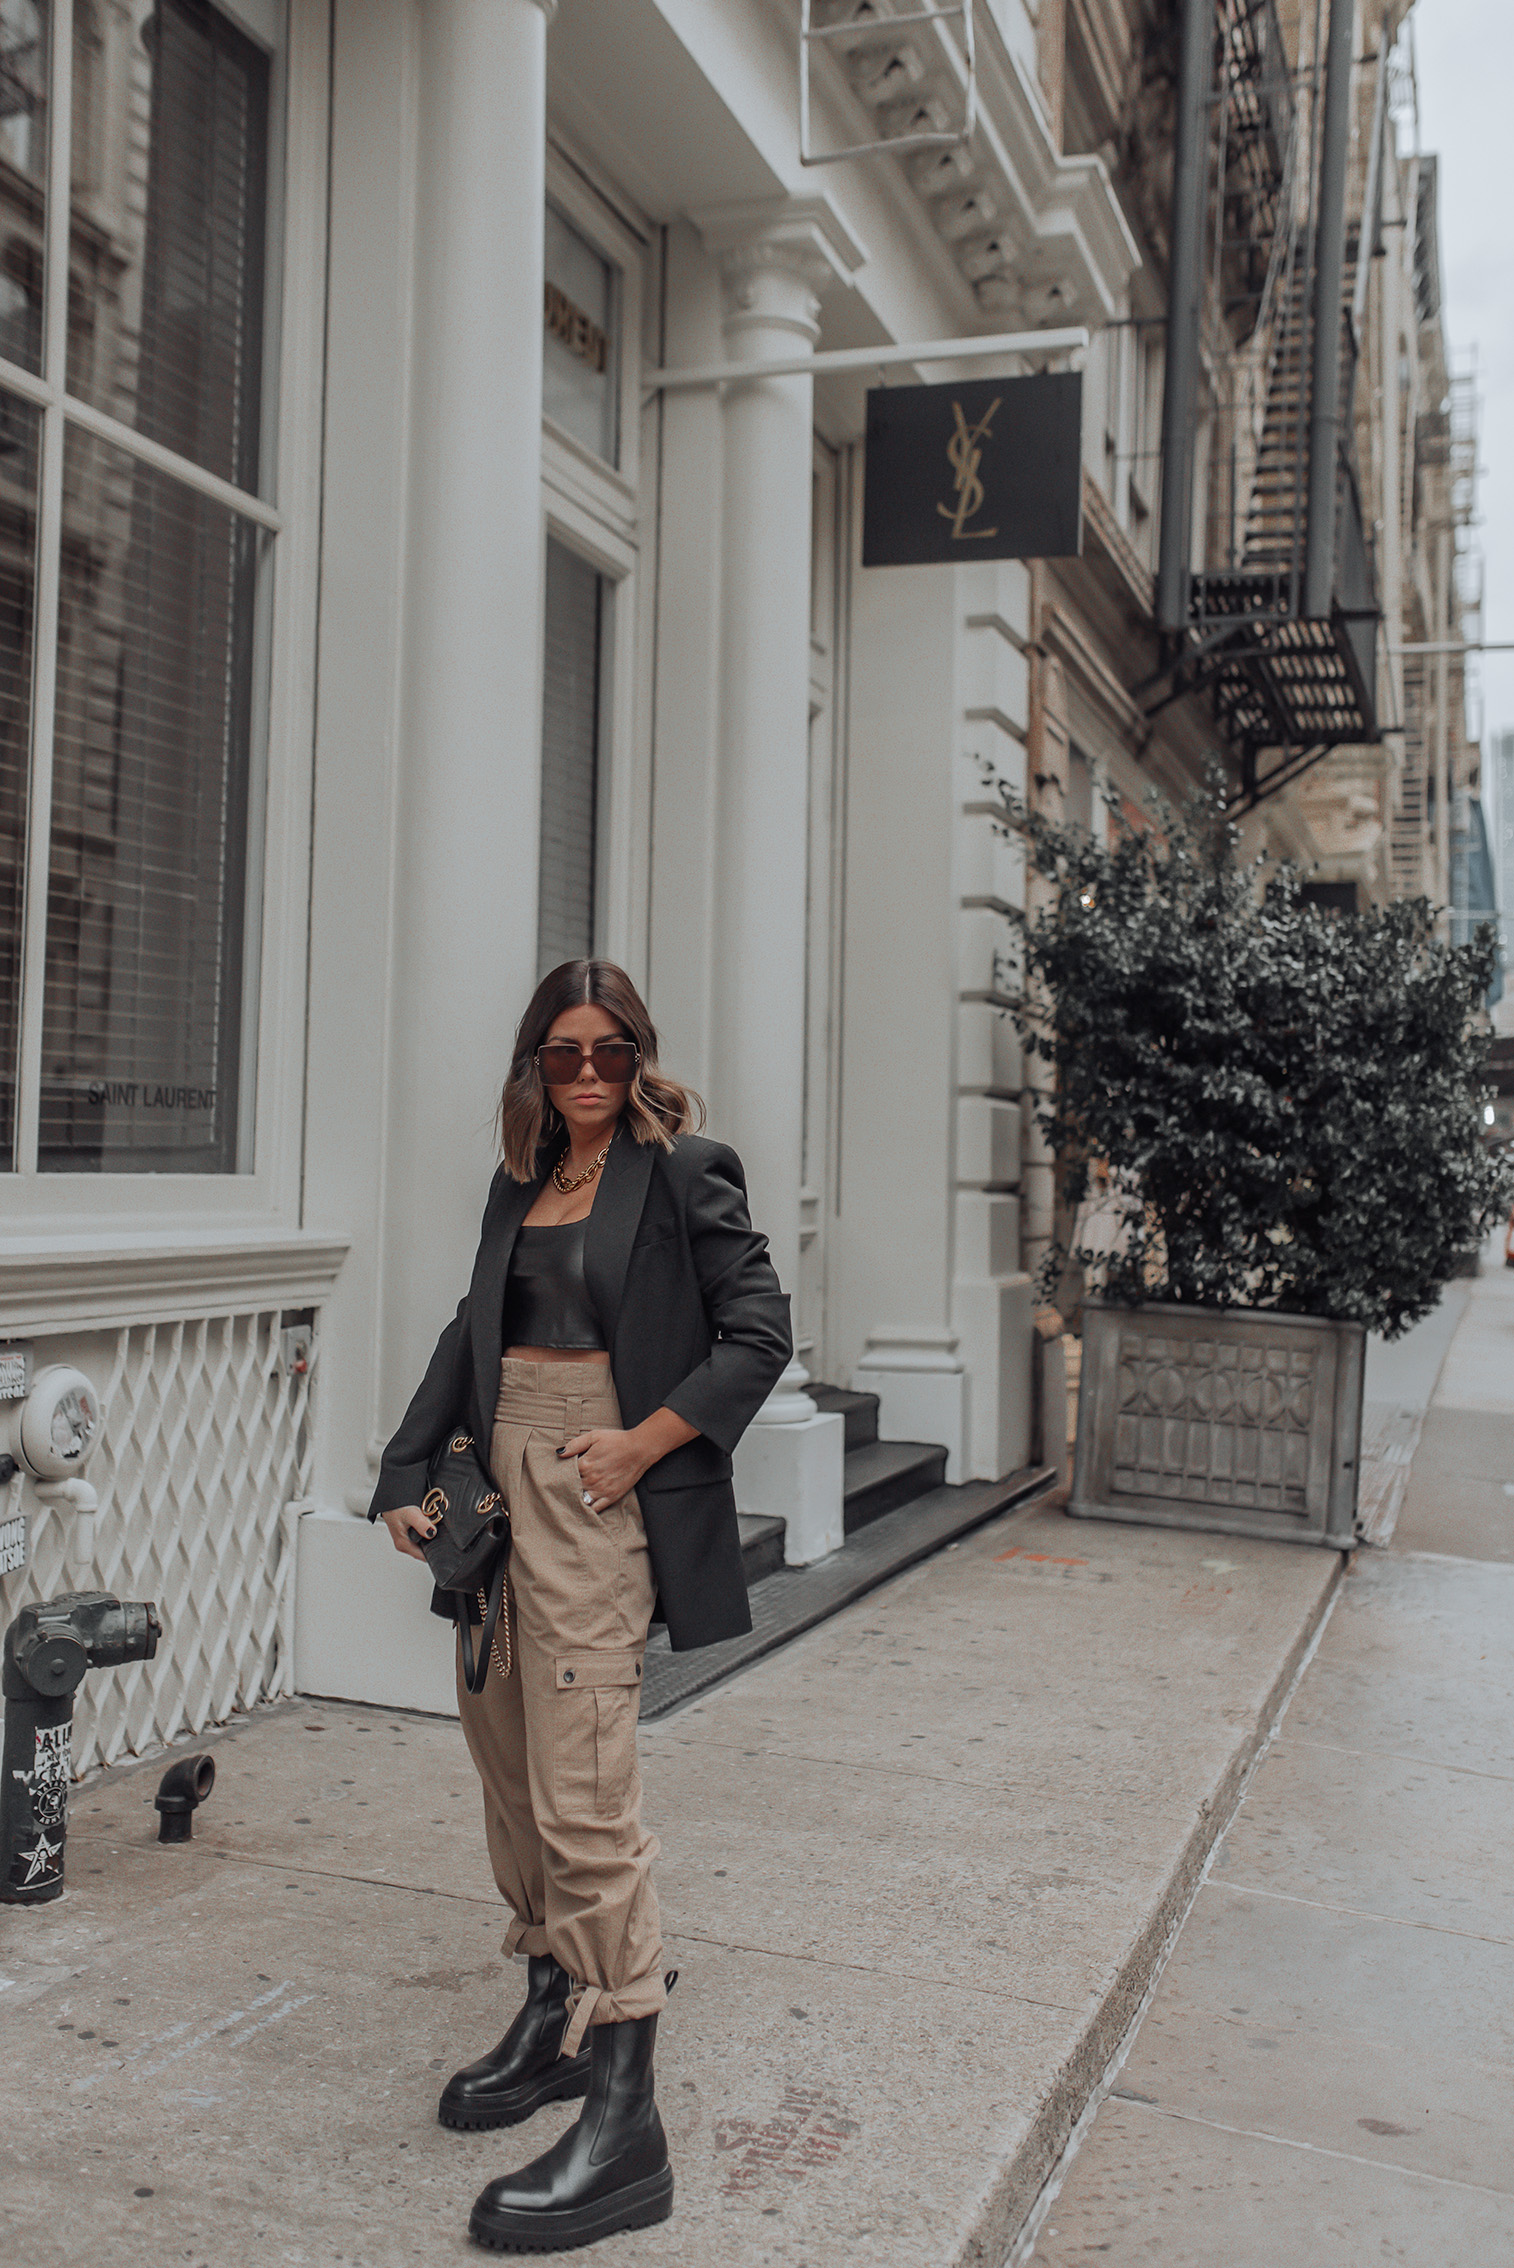 Pants (Zara) | Blazer (zara) | Faux Leather Crop Top | Gucci Bag NYFW 2020 has arrived! Getting so much inspiration this year and one of the trends I'm most into at the moment is combat boots! I seriously wear them all the time now! They don't hurt my feet and add an extra vibe to just about every look. Totally into comfort and edge, as always!